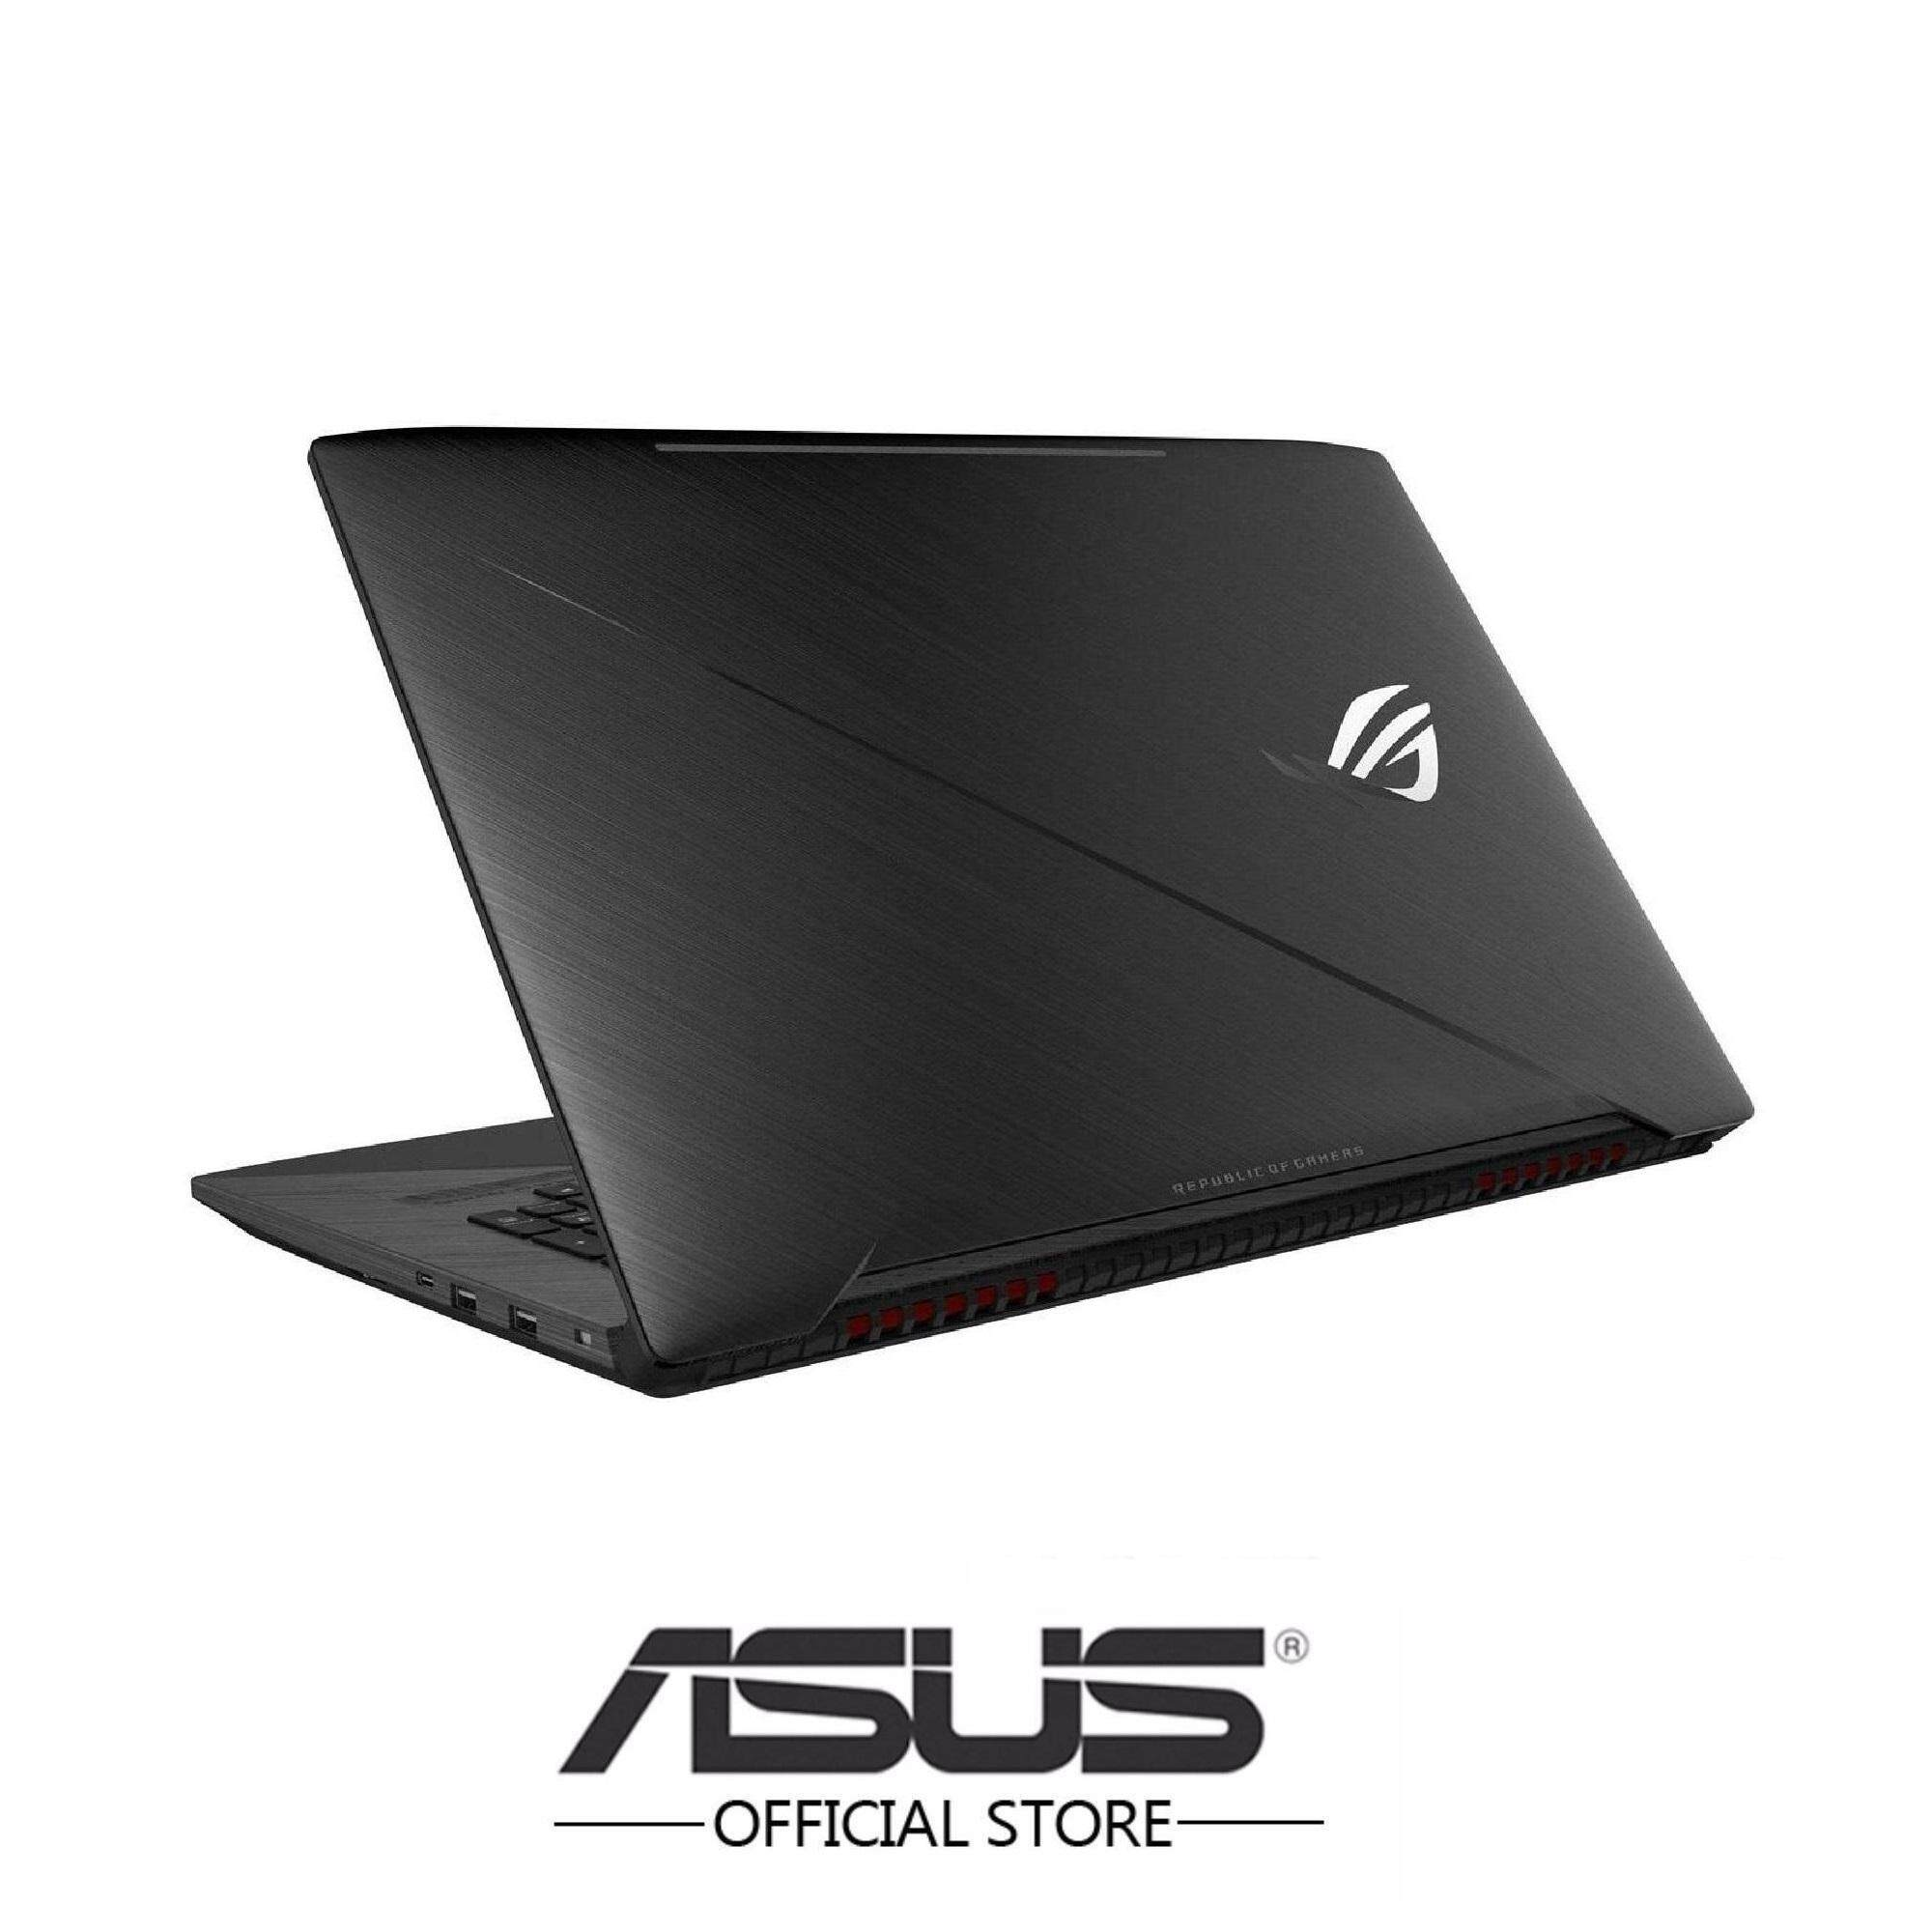 ASUS ROG 17 INCH STRIX SCAR EDITION GL703 GL703G GL703G-EEE035T / GL703G-ME5029T / GL703G-SE5026T GAMING NOTEBOOK - FREE ROG BACKPACK Malaysia